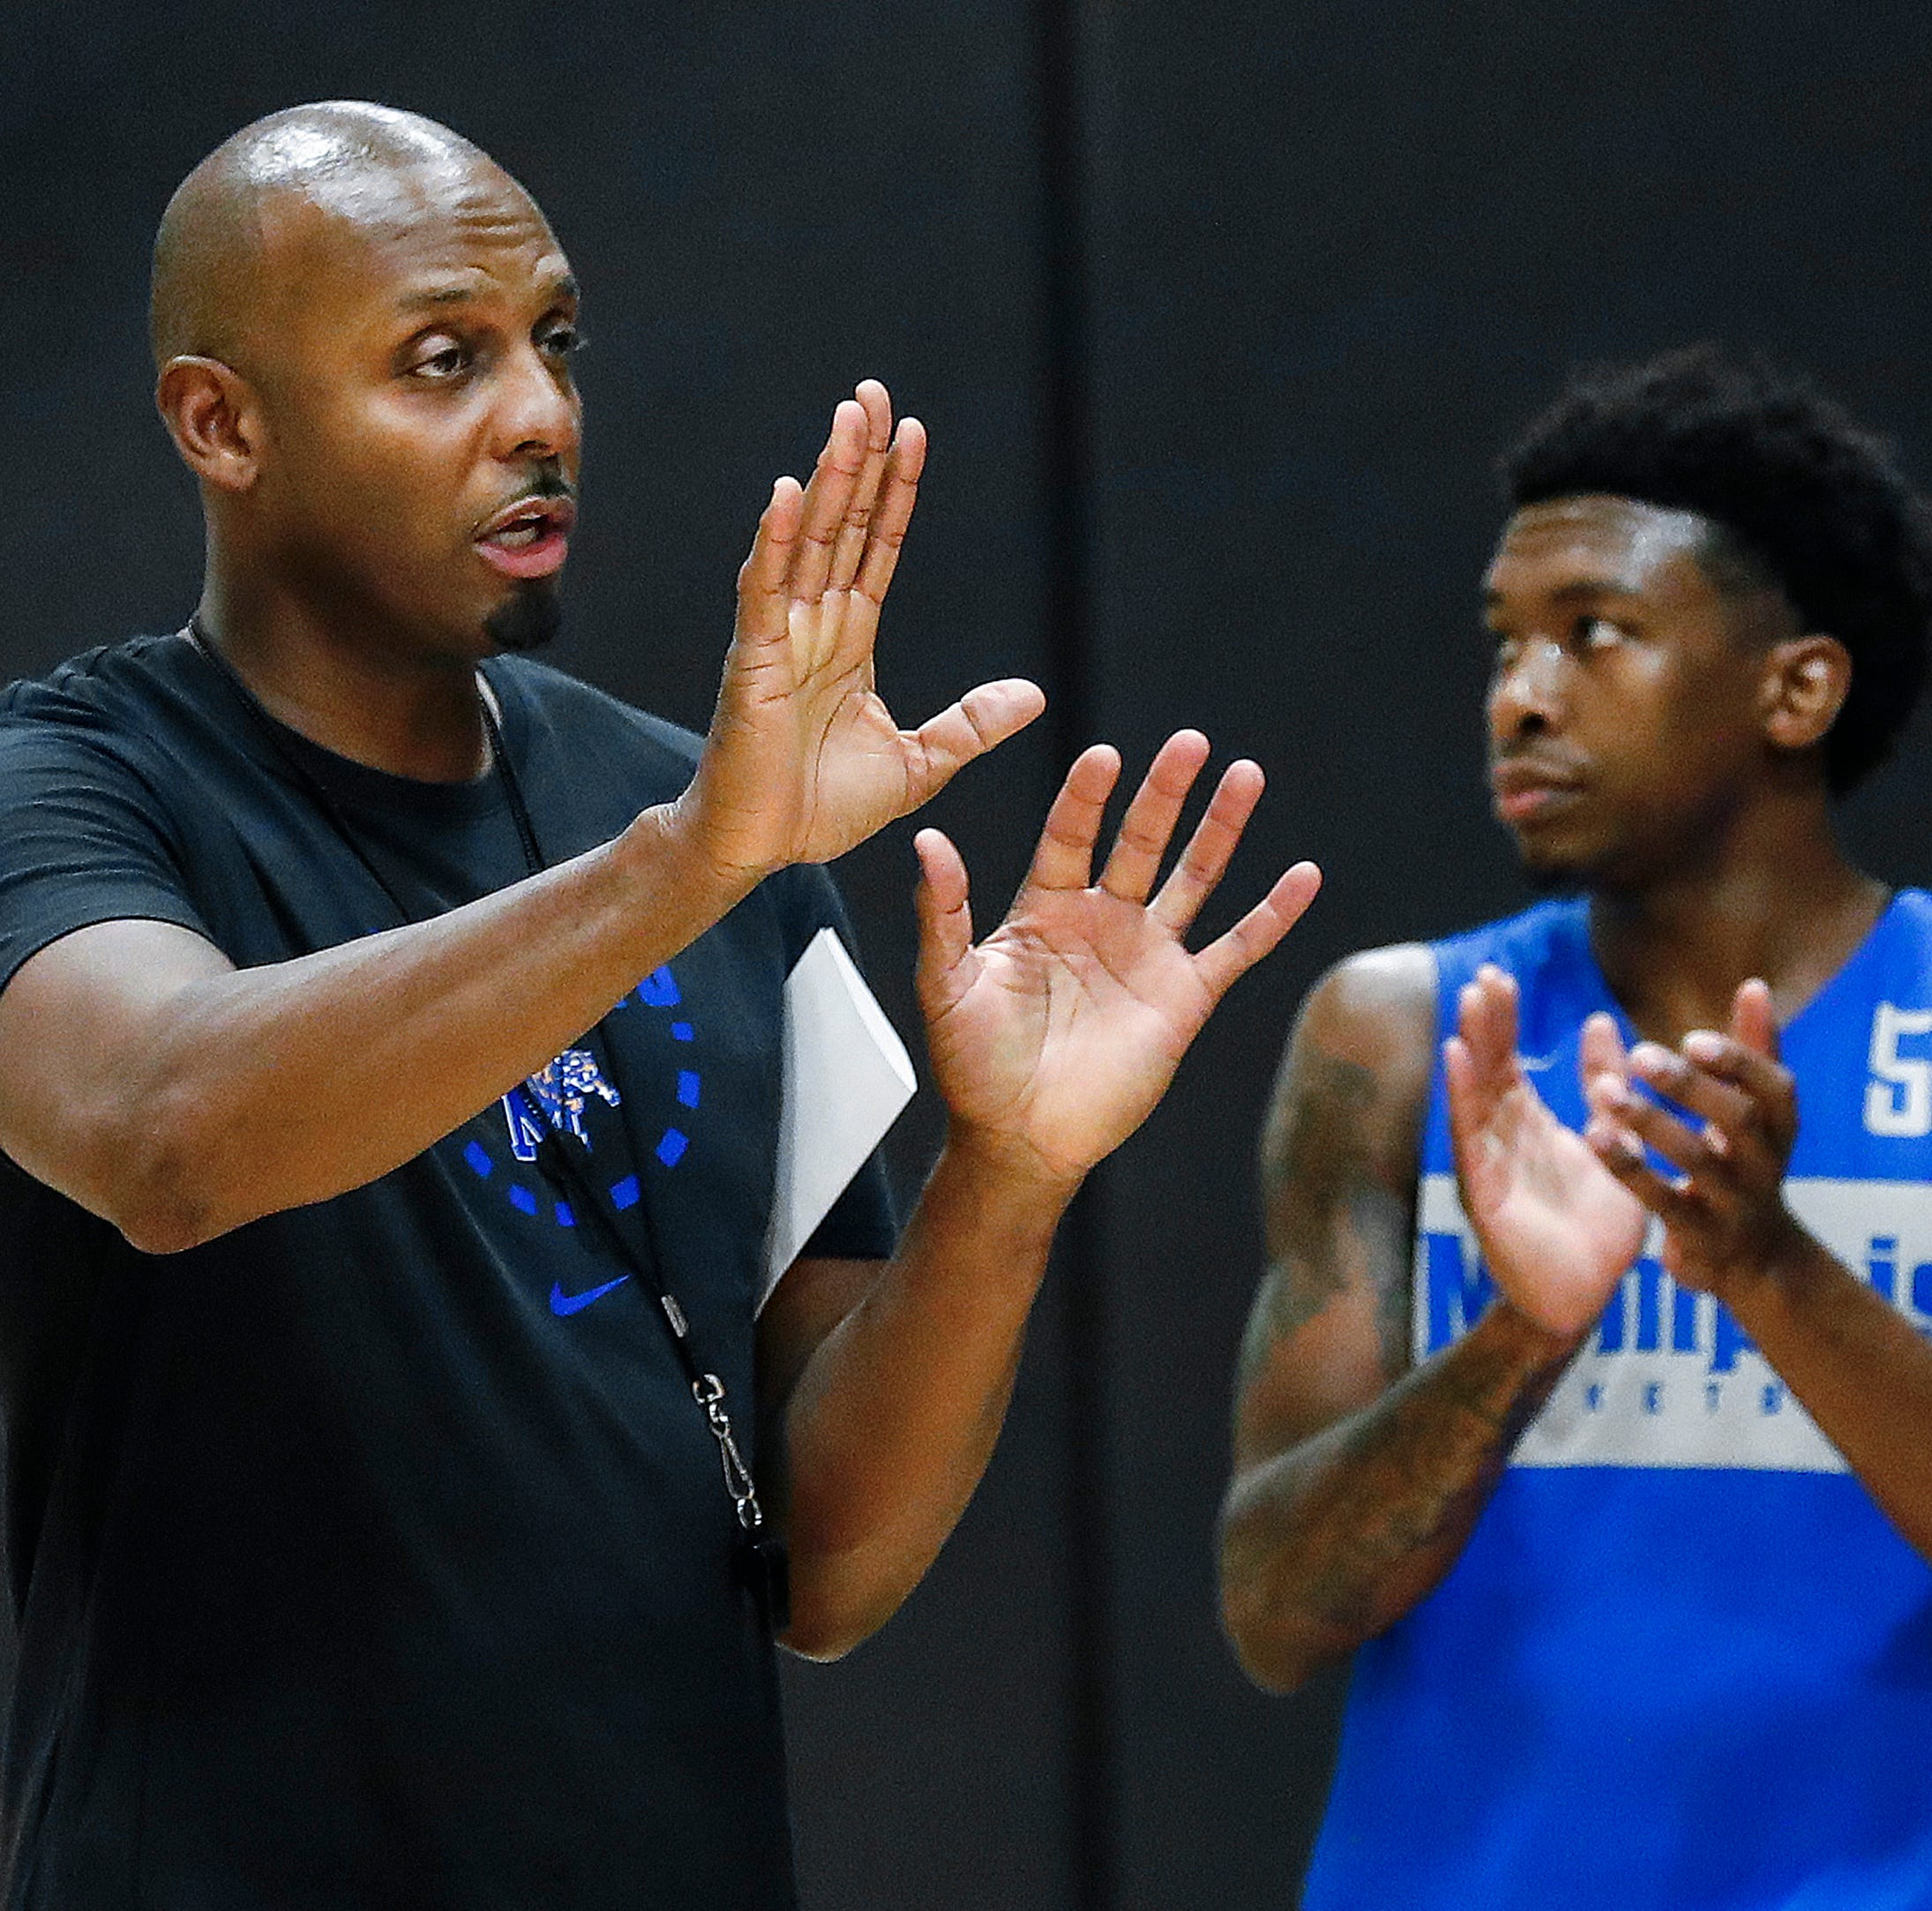 Penny Hardaway says college basketball is still pure. He can't be that naive.